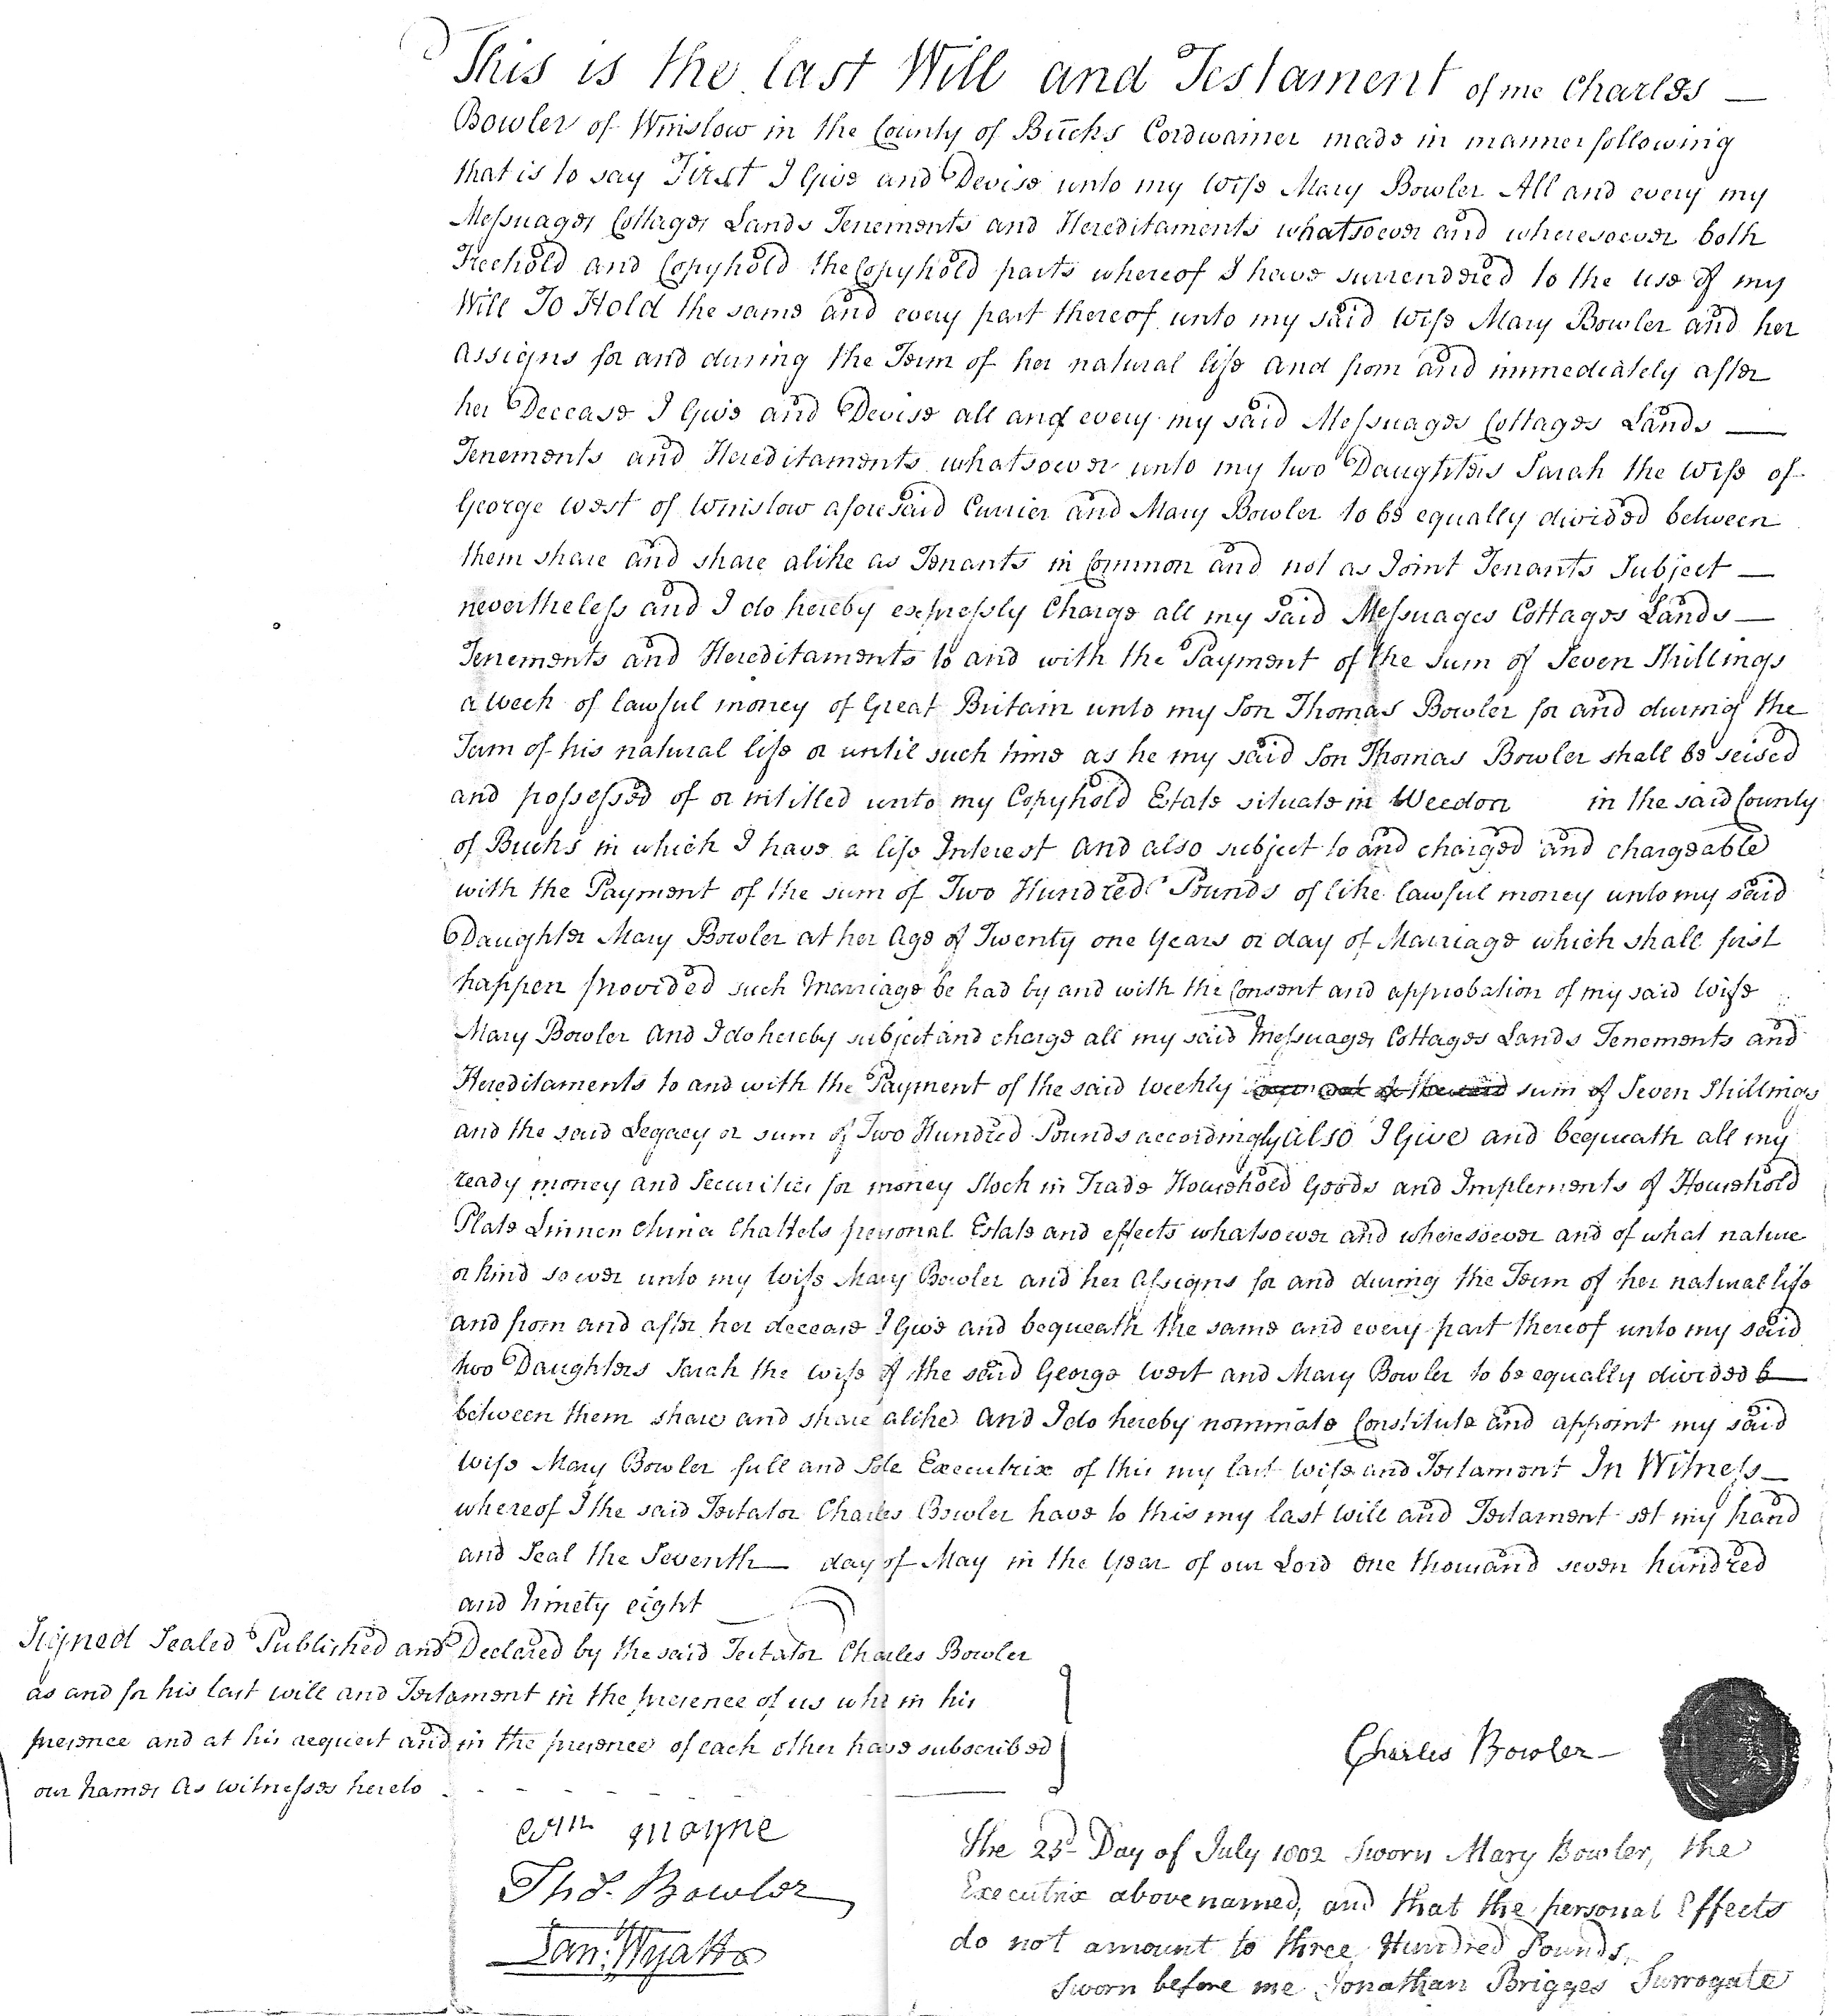 Will of Charles Bowler